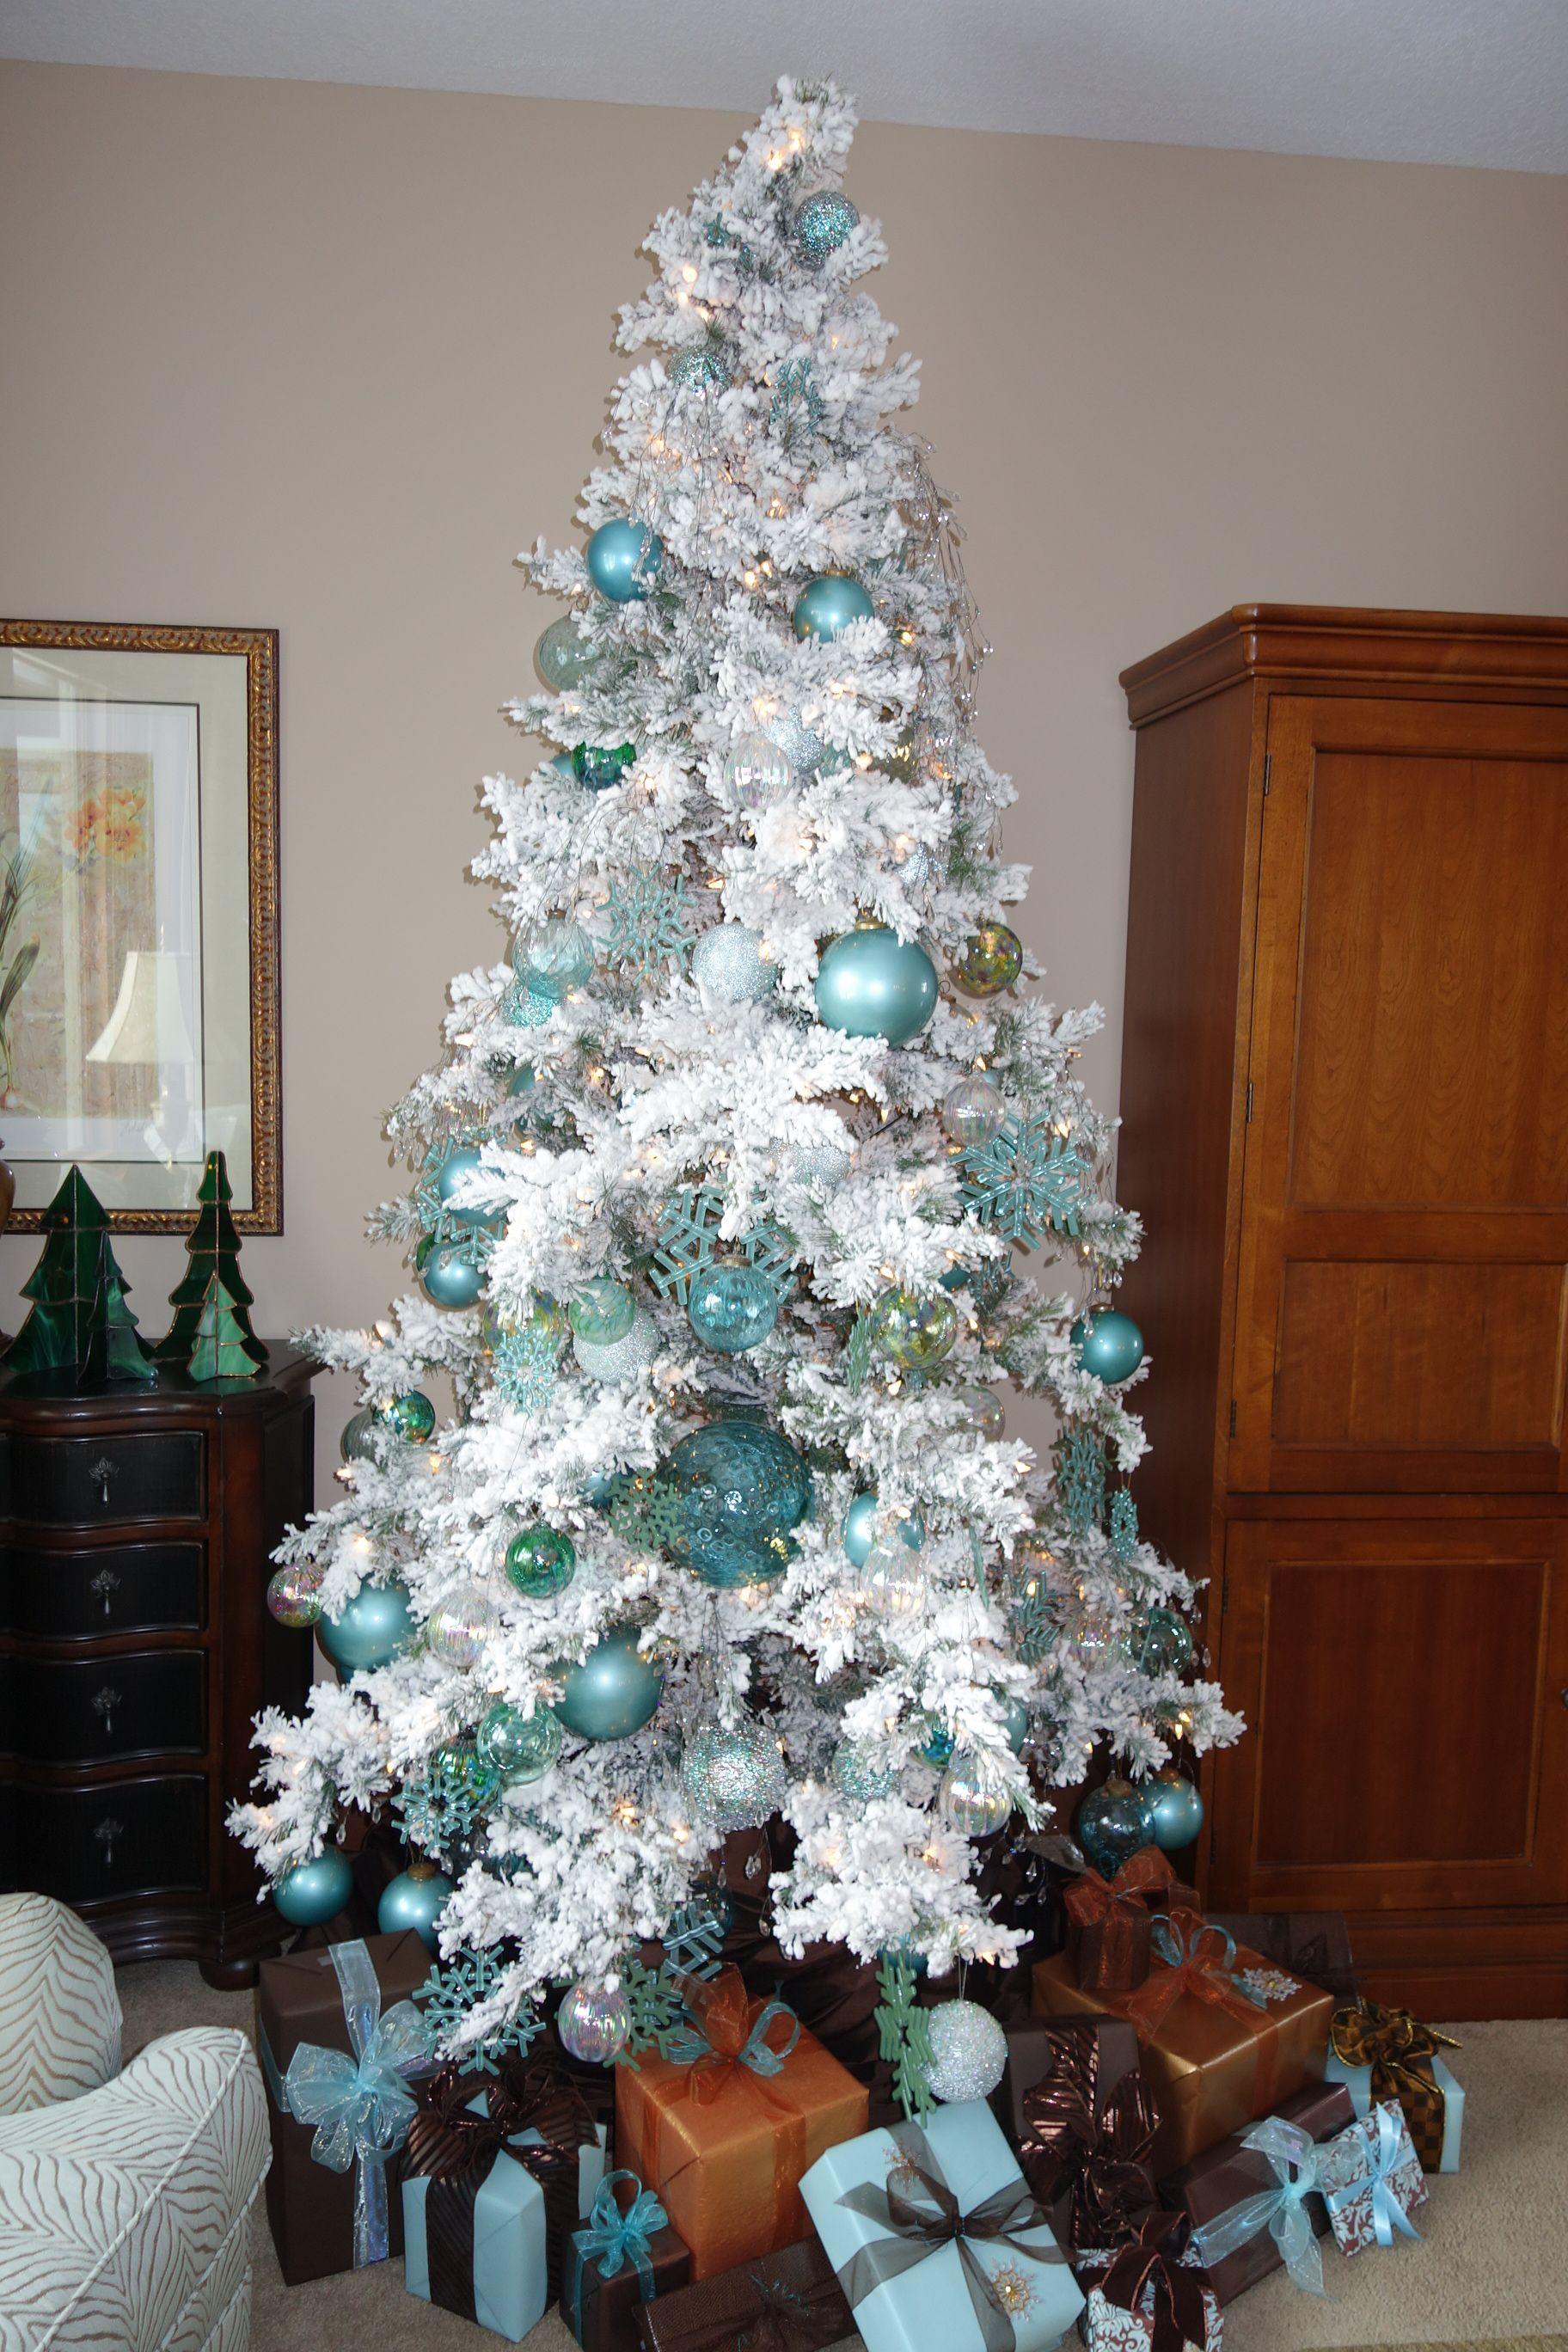 White Flocked Christmas Tree With Turquoise, Copper And Brown Wrapped